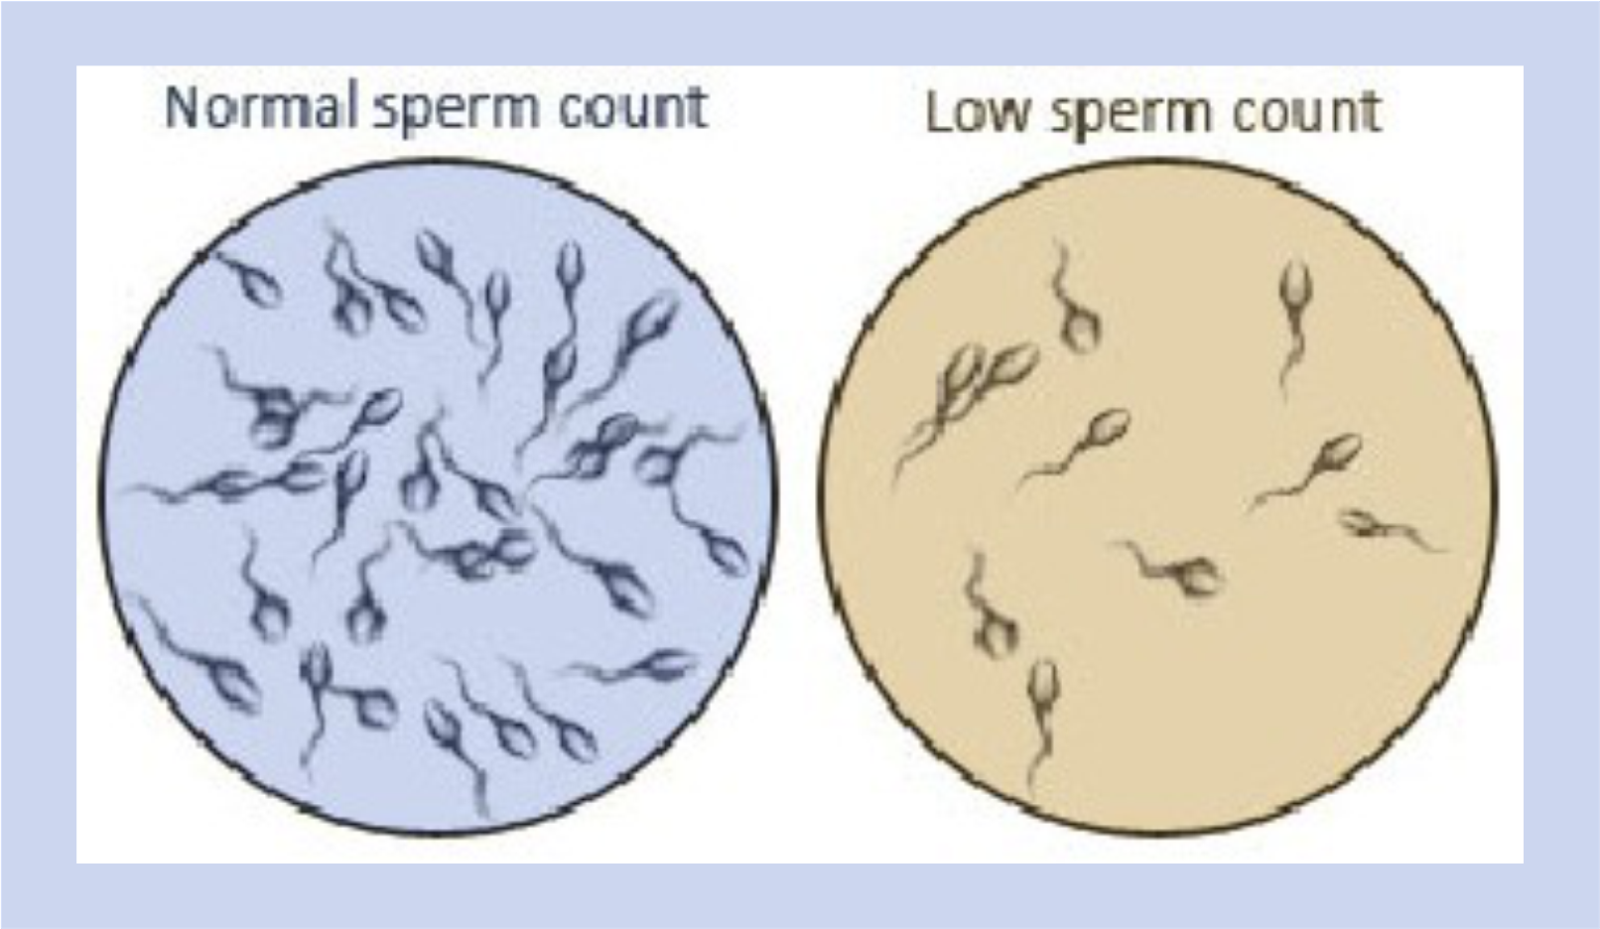 Treating a low sperm count